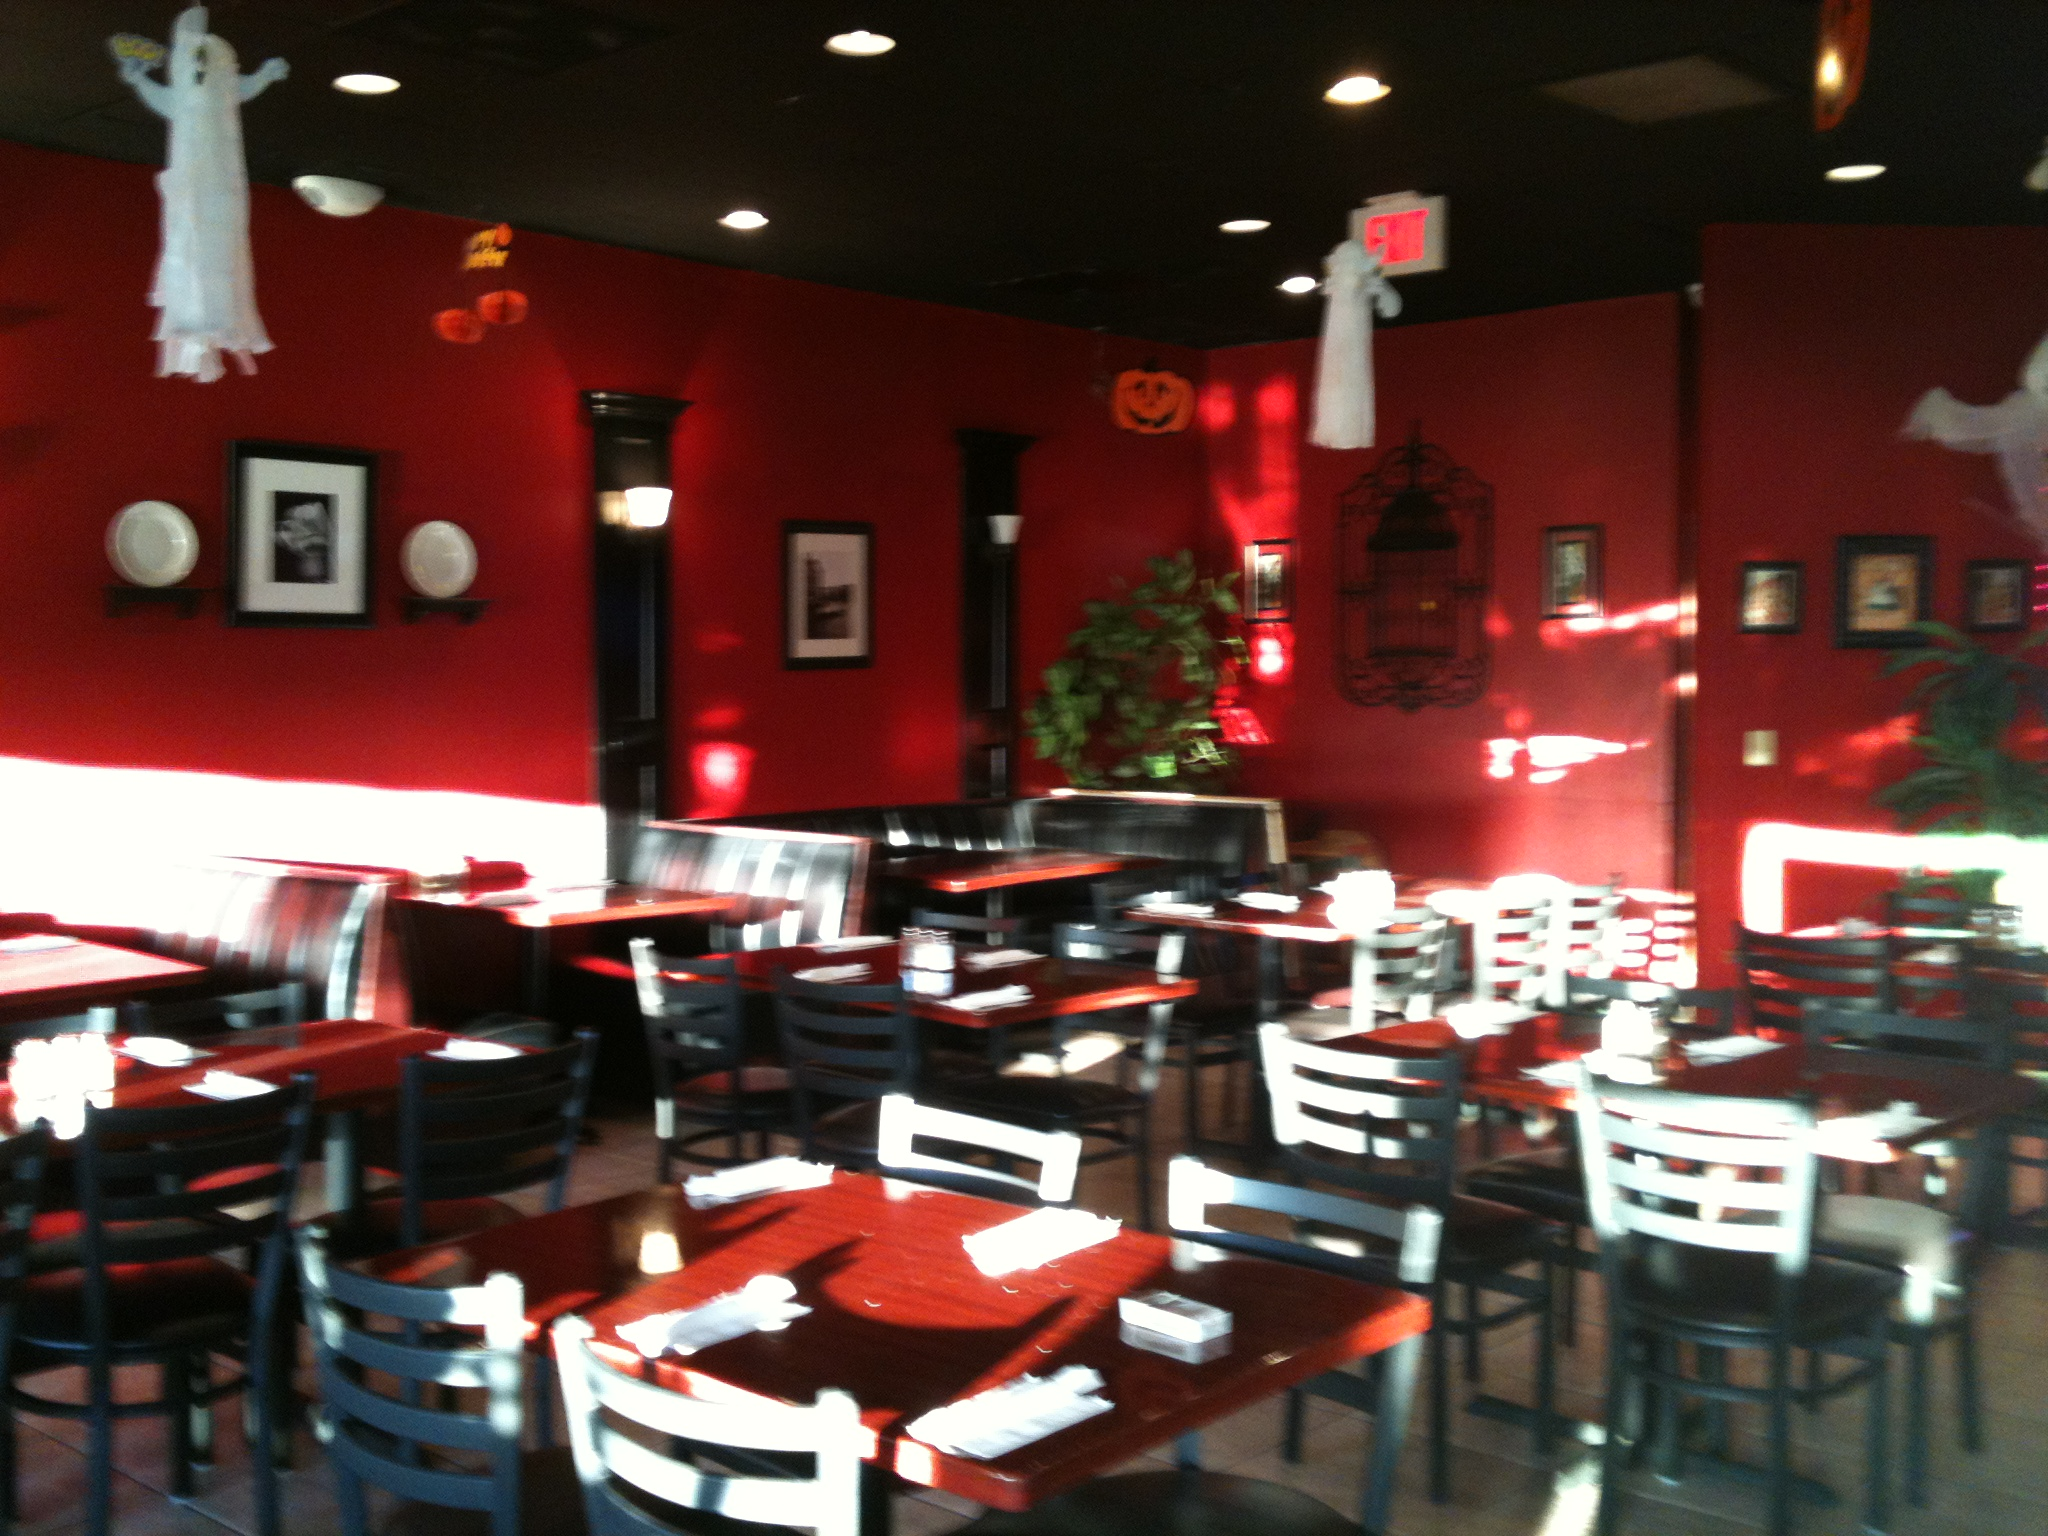 Turnkey Pizza Restaurant for Sale in Coral Springs Florida